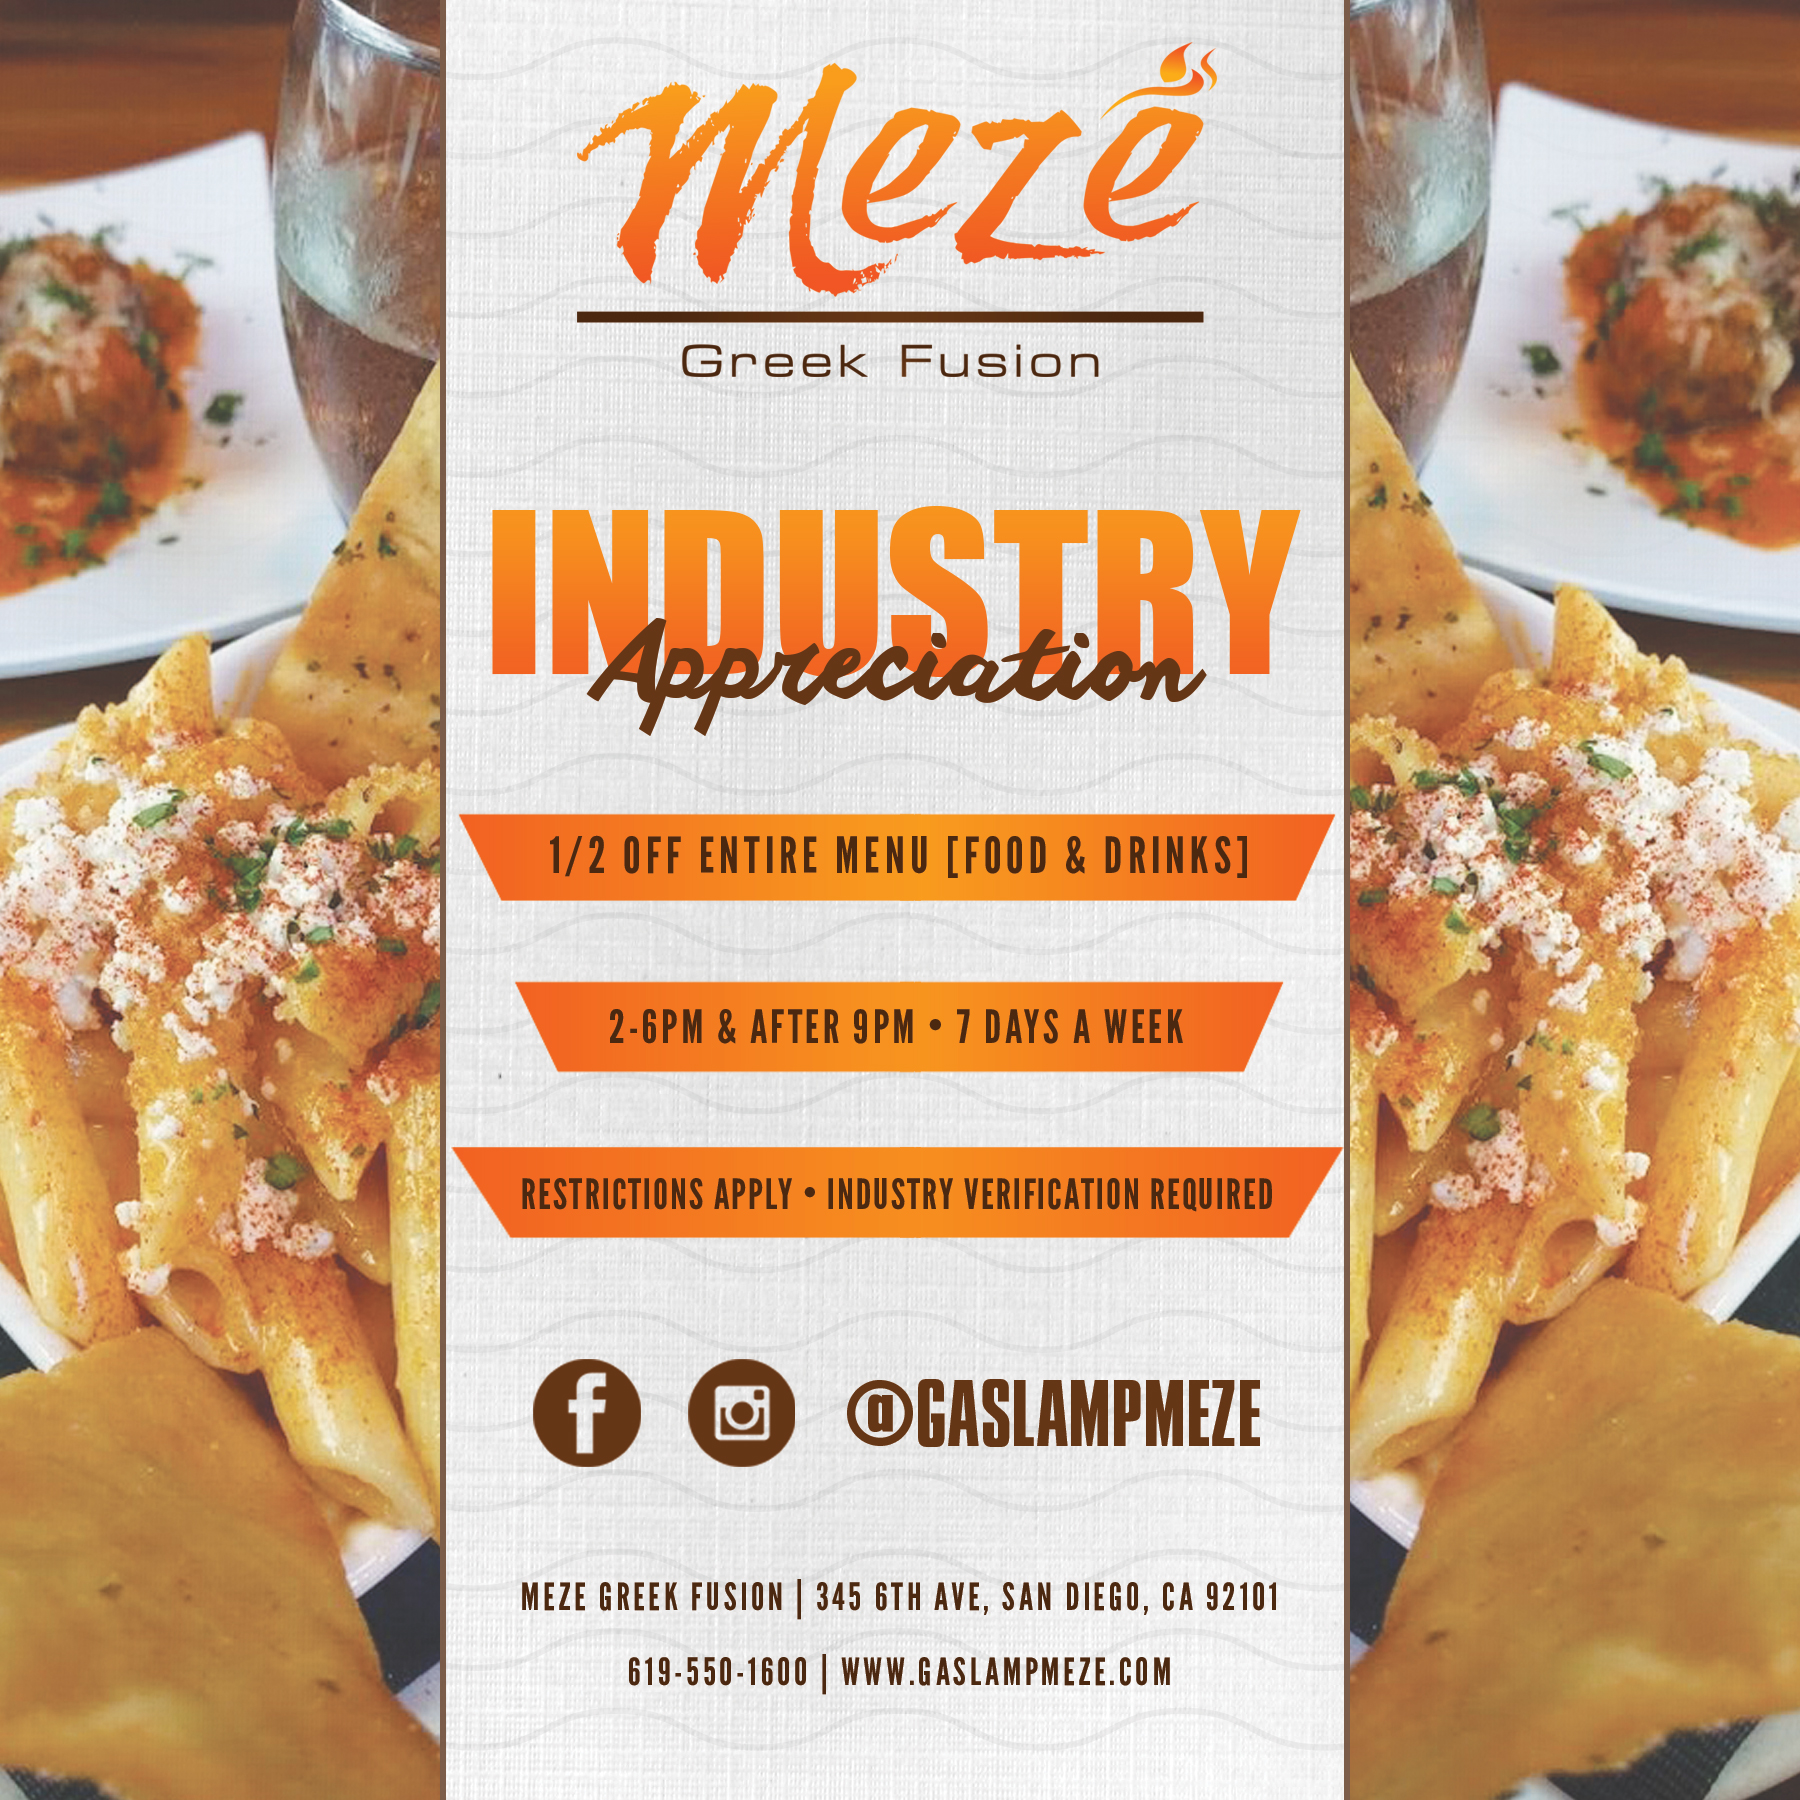 meze-industryappreciation